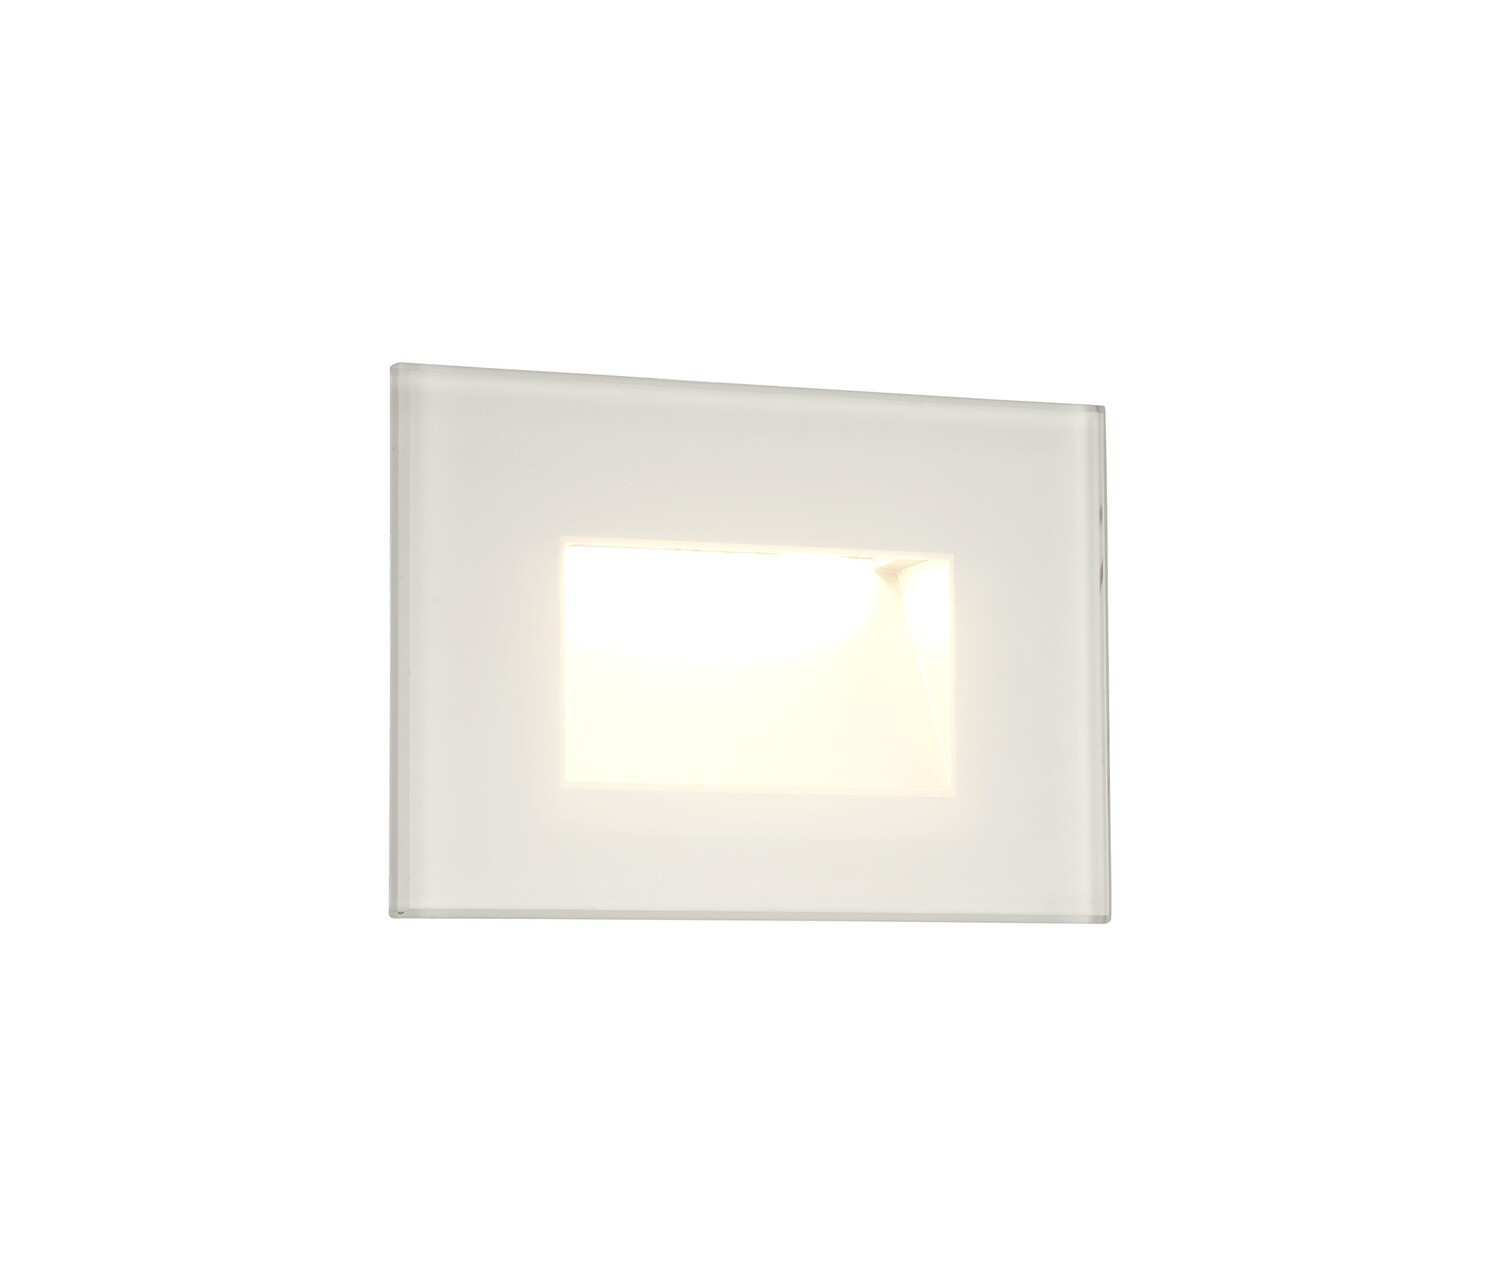 Slava Recessed Square Wall Lamp, 1 x 3.3 W LED, 3000K, 145lm, IP65, White